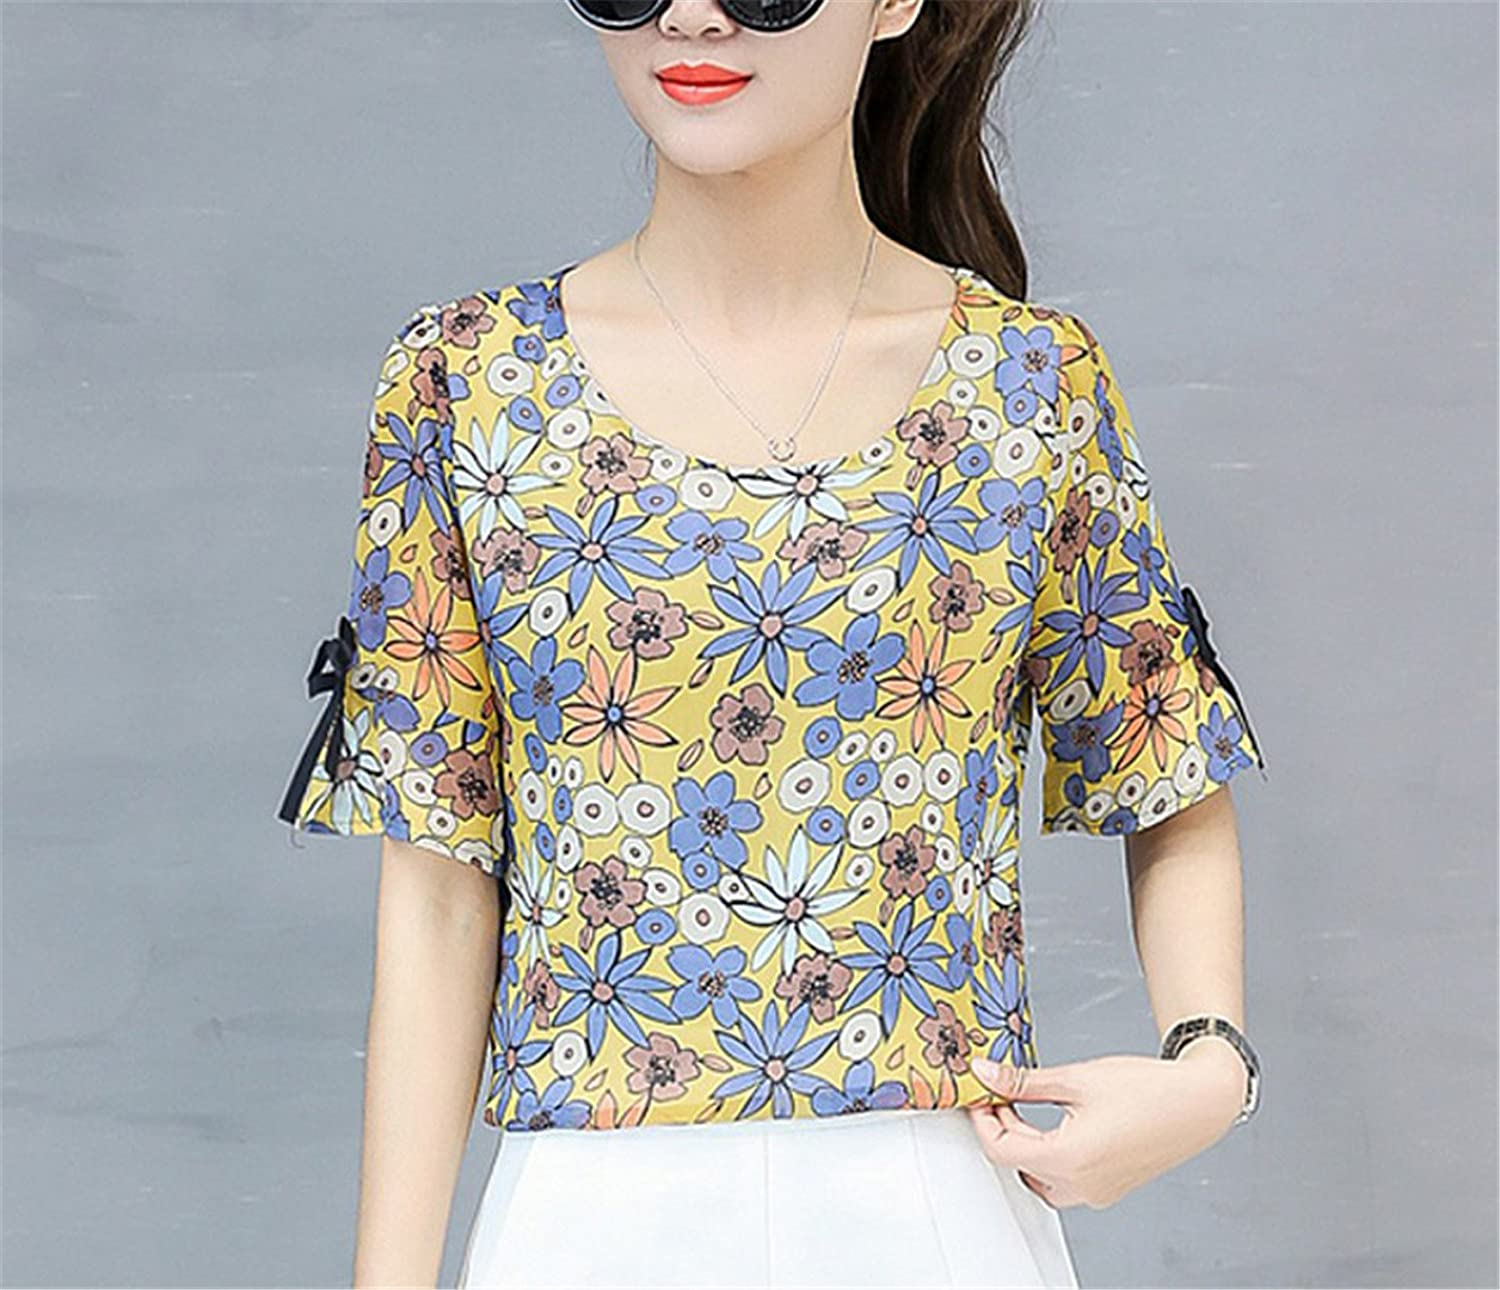 OUXIANGJU New Womens Summer Chiffon Blouse Fashion Short Sleeve O-Neck Floral Print Shirts at Amazon Womens Clothing store: